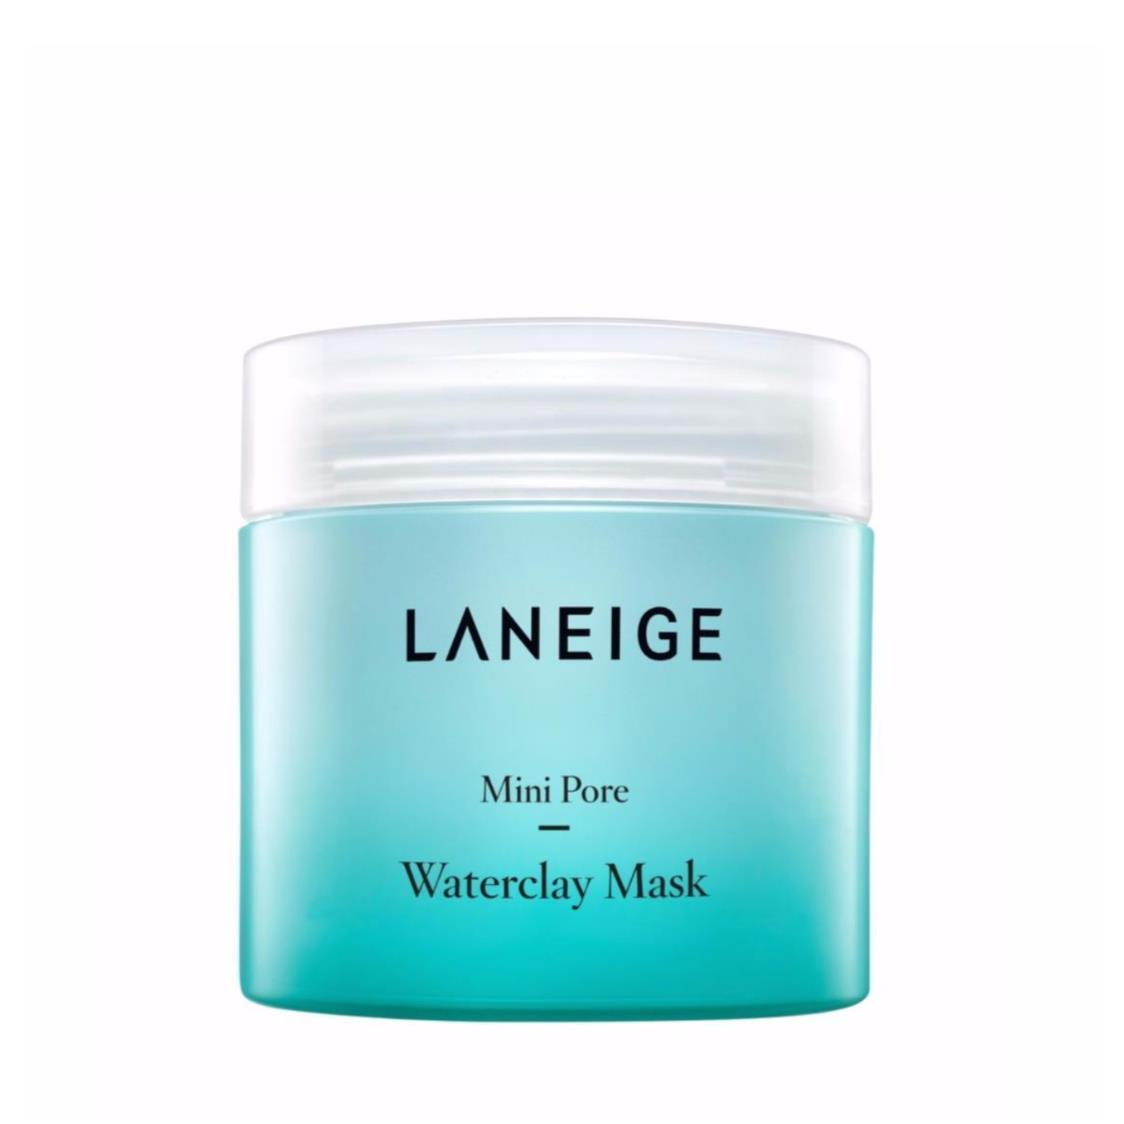 Mini Pore Waterclay Mask 70ml